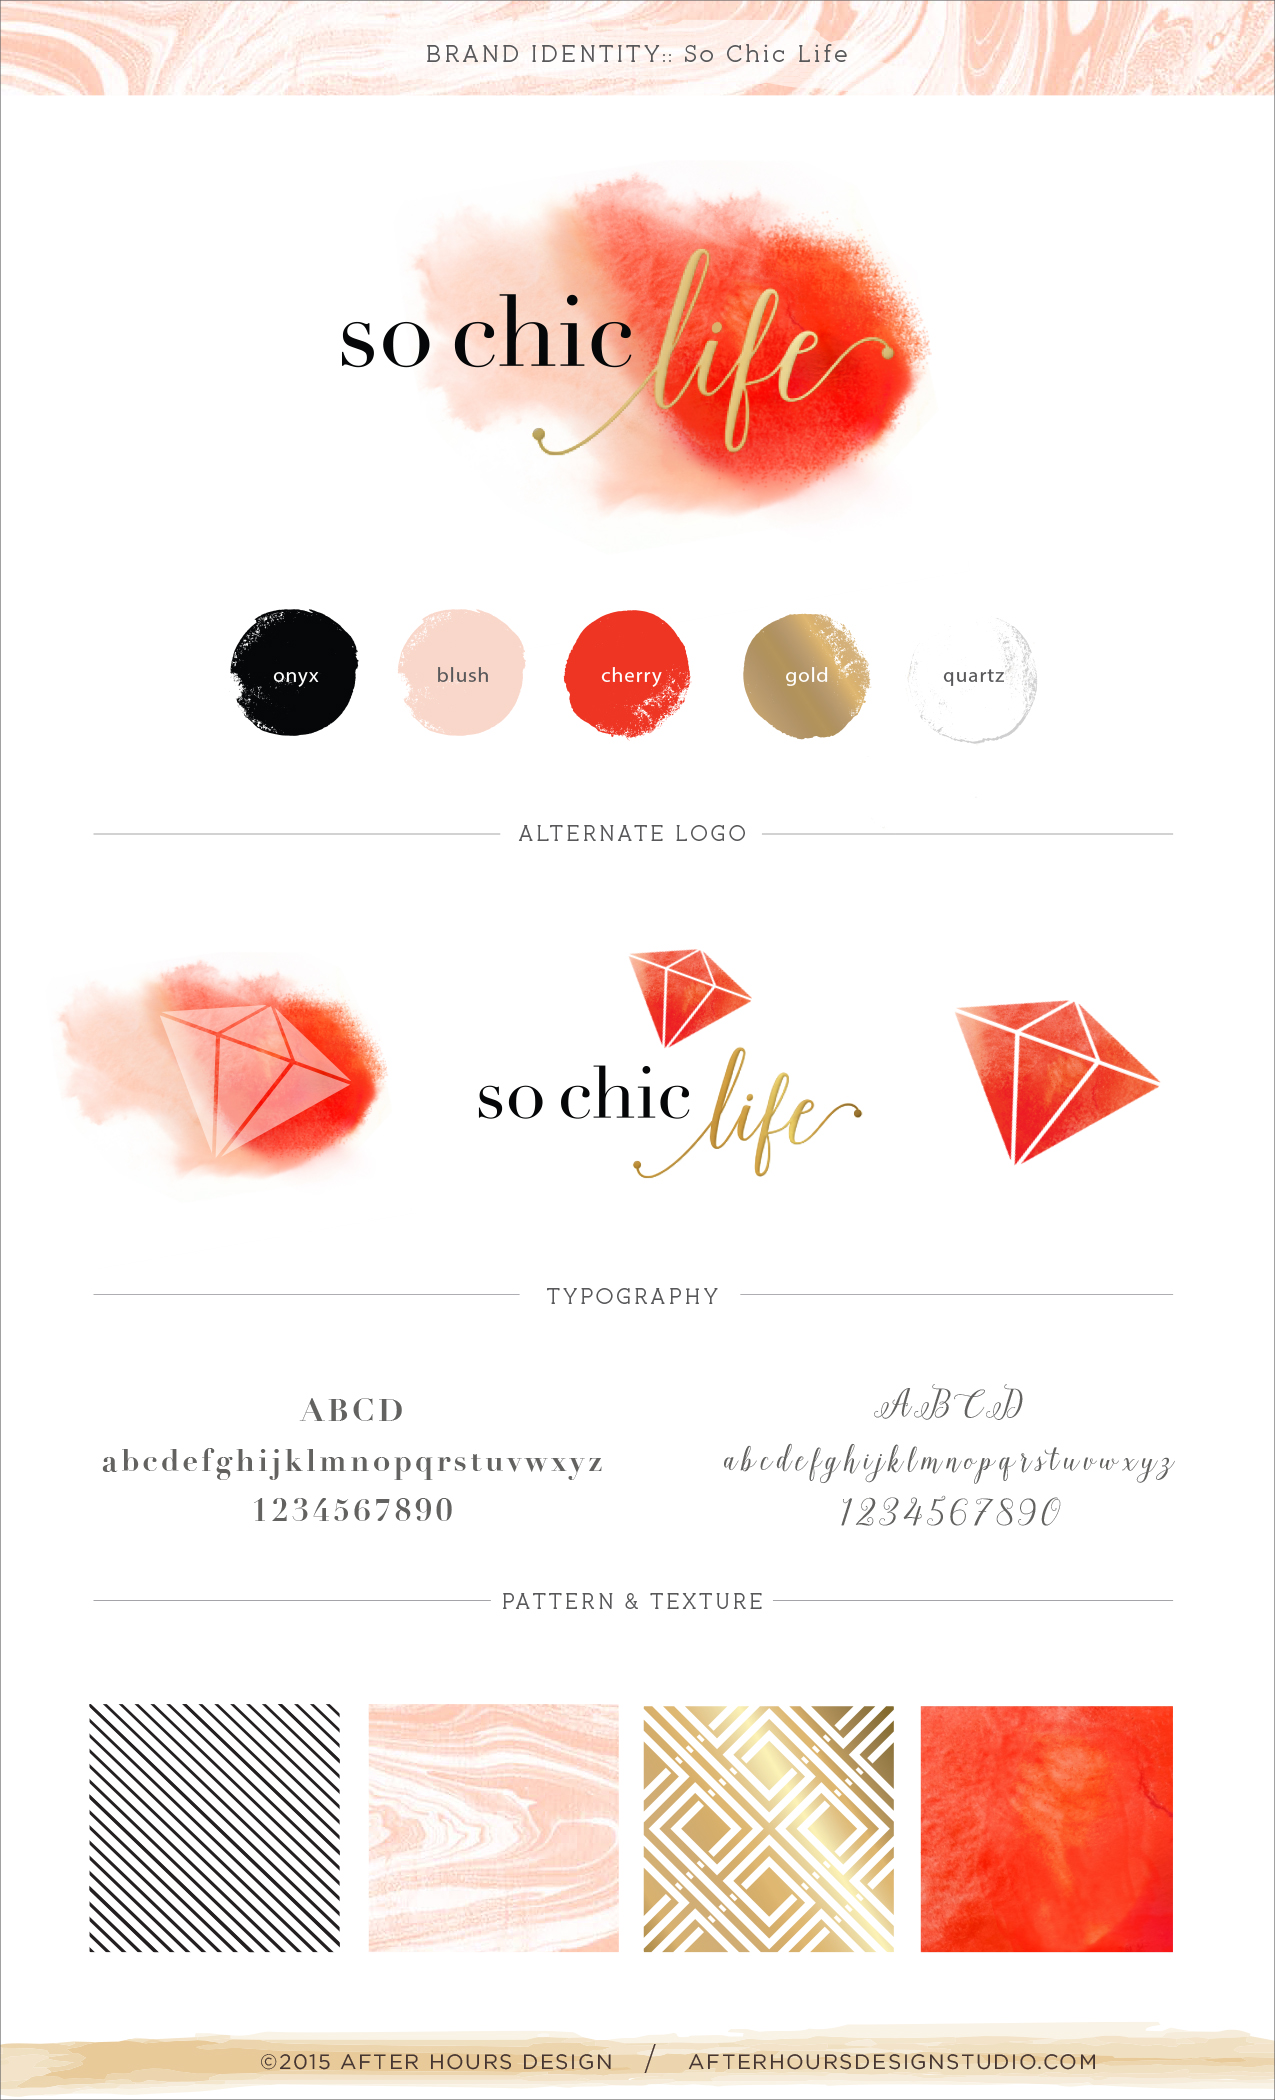 _So_Chic_Life_Board_red2